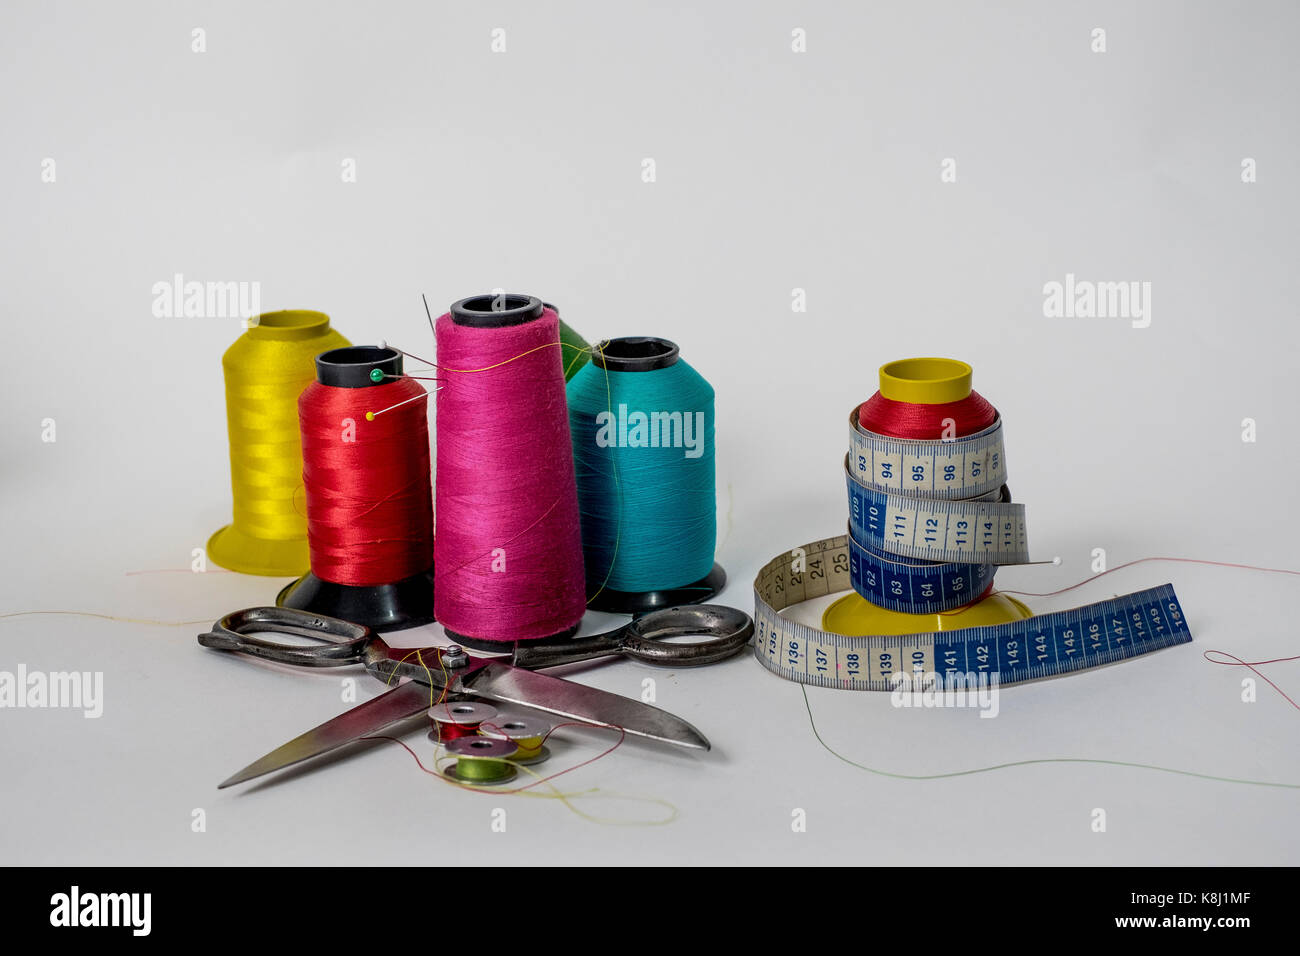 line reels, scissors, metric tape, pin and needles, some of the many necessary tools  for the art of sewing that Stock Photo